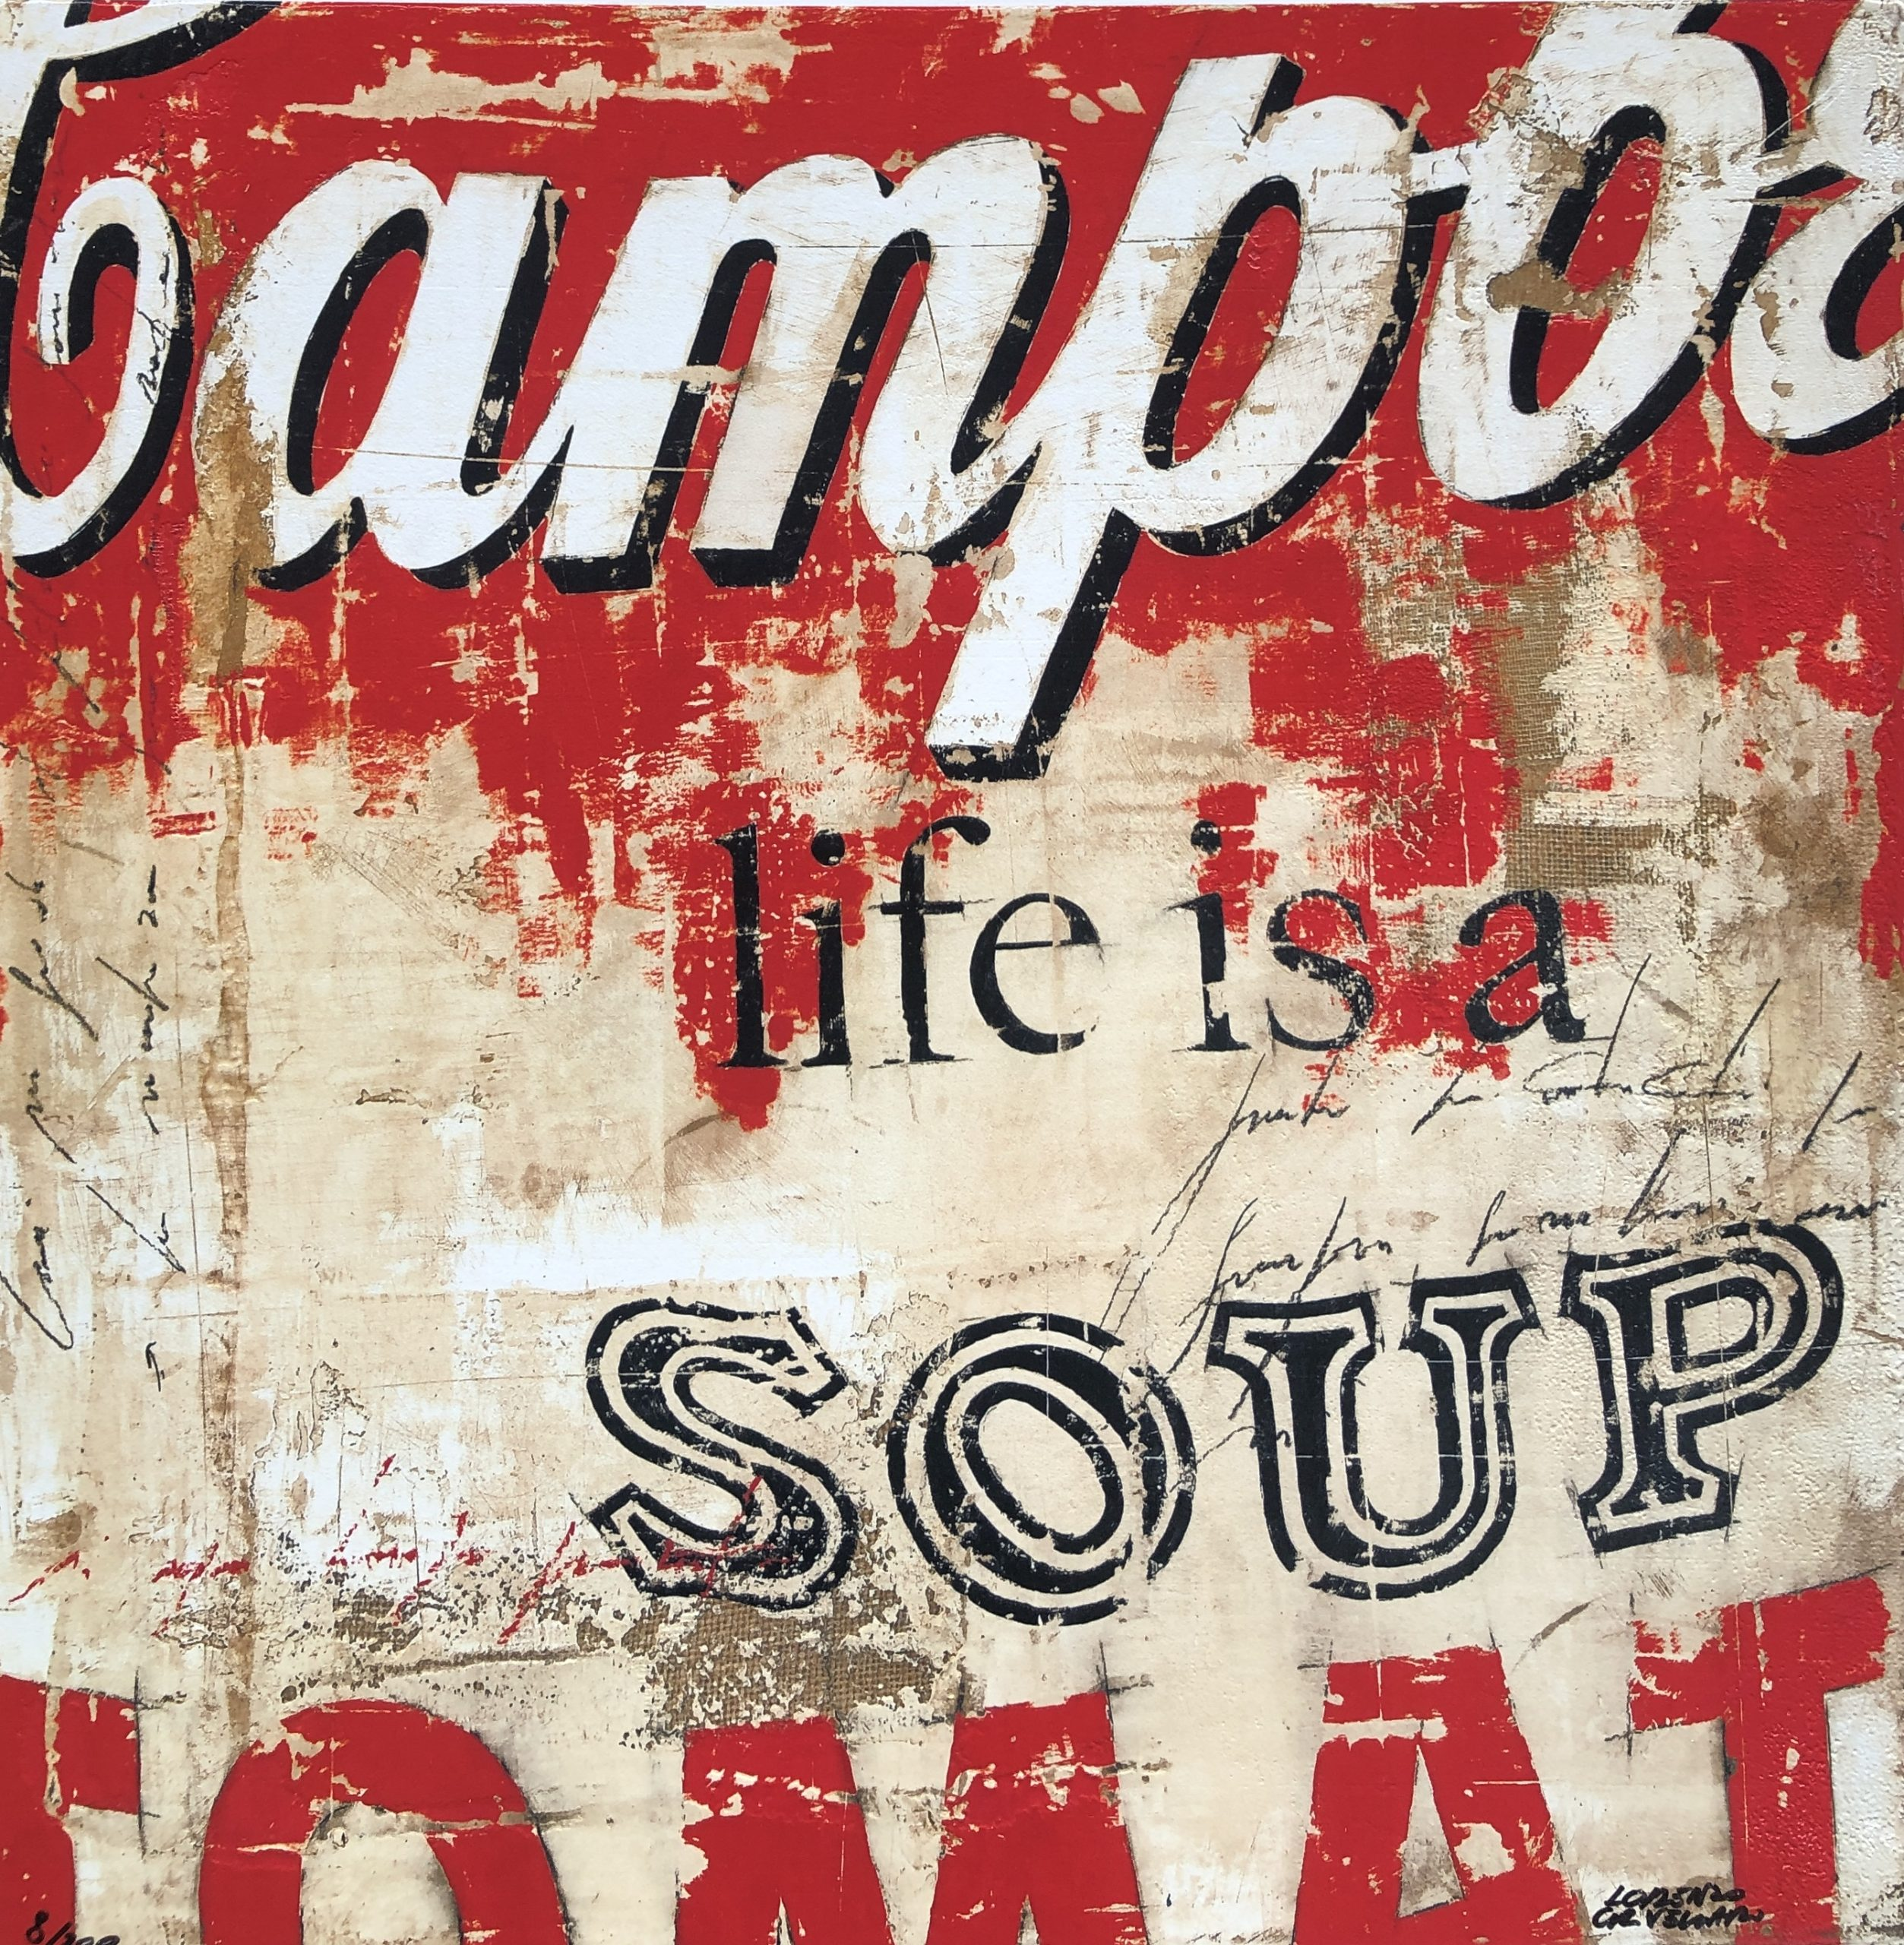 cambell soup 1